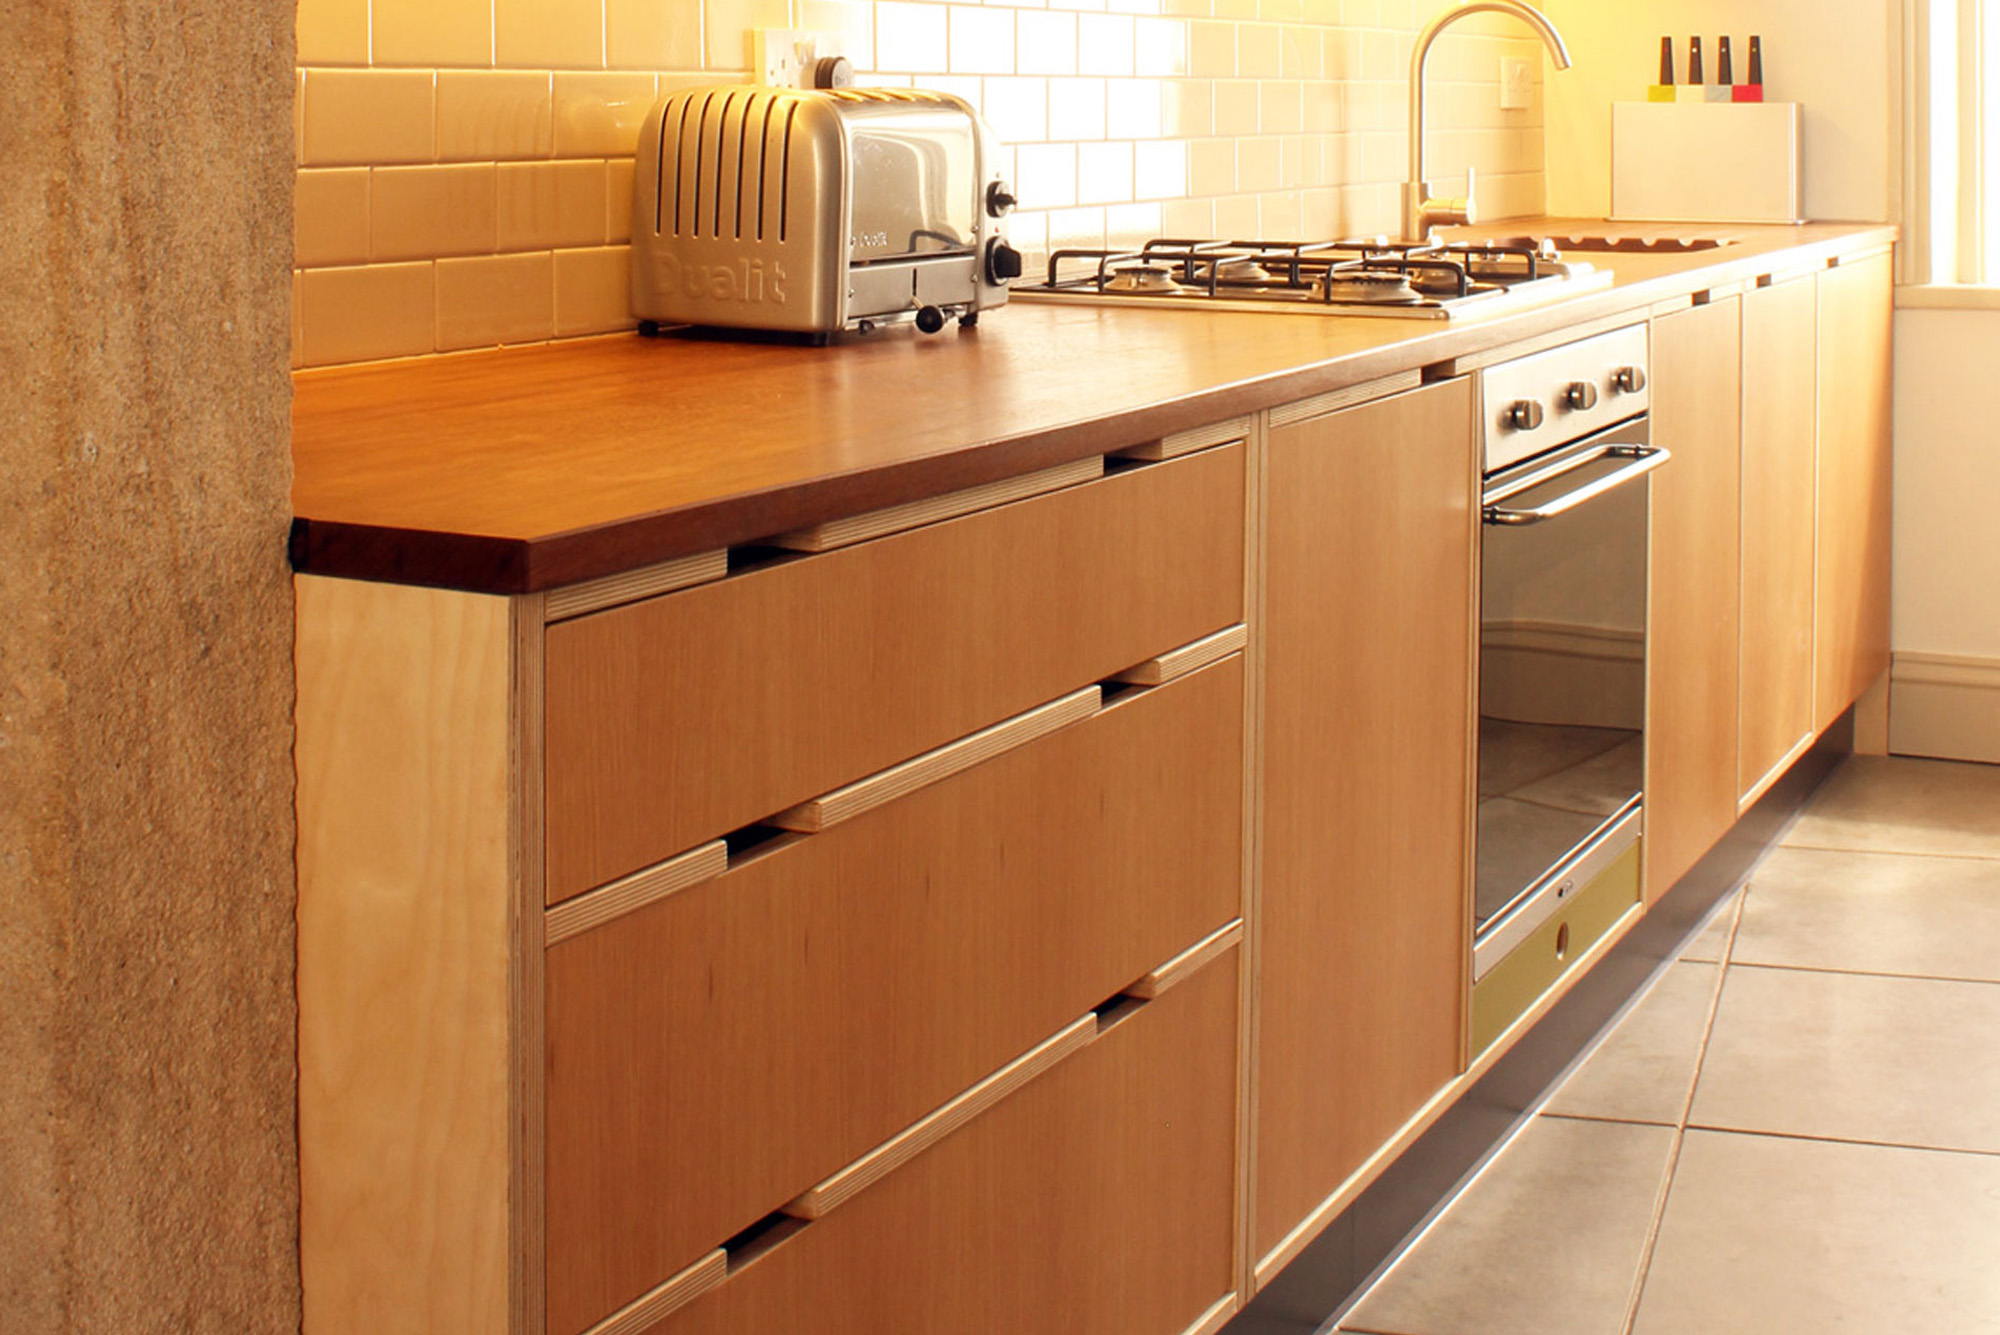 Oak veneer kitchen drawers